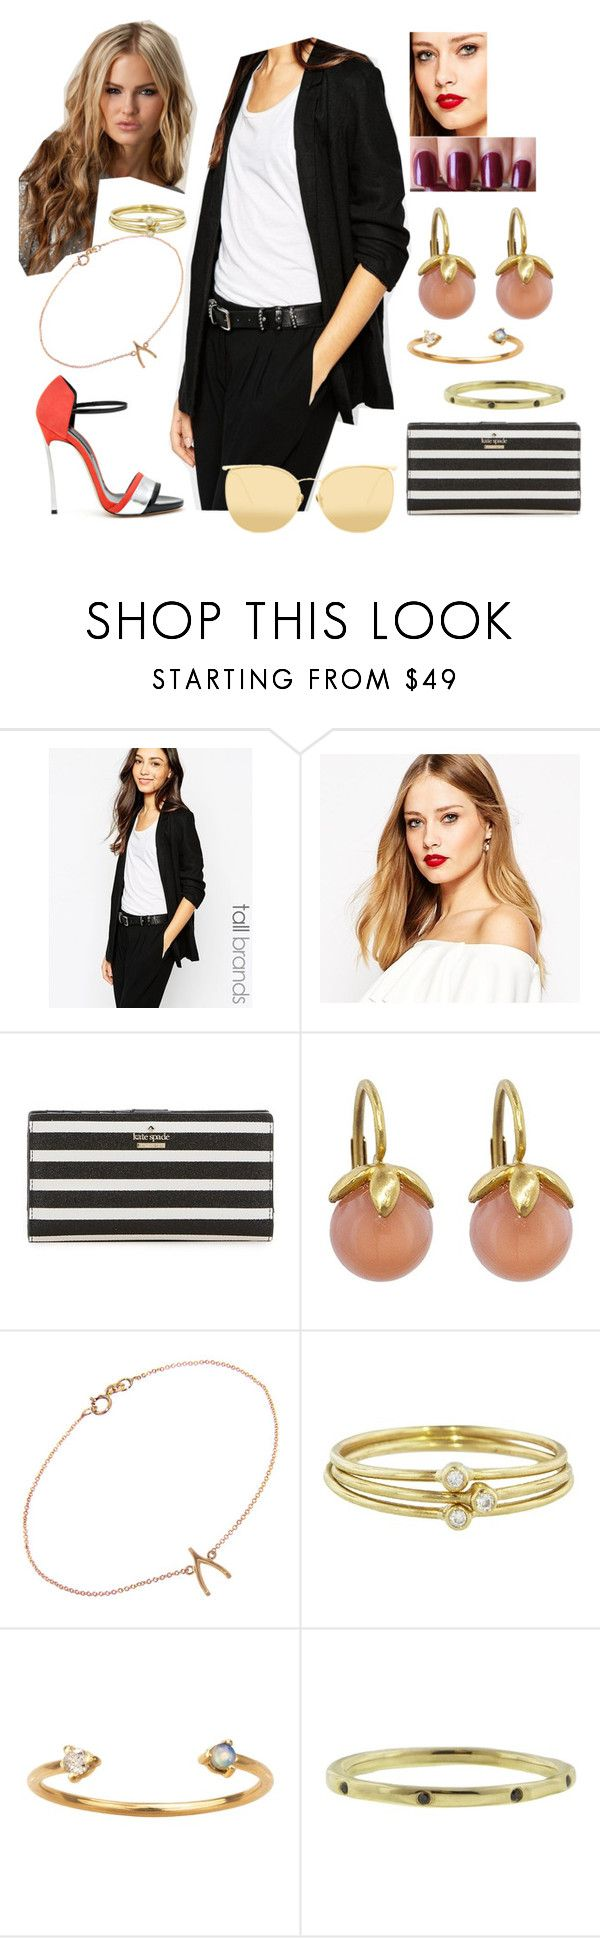 """Bez tytułu #18414"" by sophies18 ❤ liked on Polyvore featuring Casadei, Vero Moda, ASOS, Barry M, Kate Spade, Cathy Waterman, Jennifer Meyer Jewelry, WWAKE, Lauren Wolf and Linda Farrow"